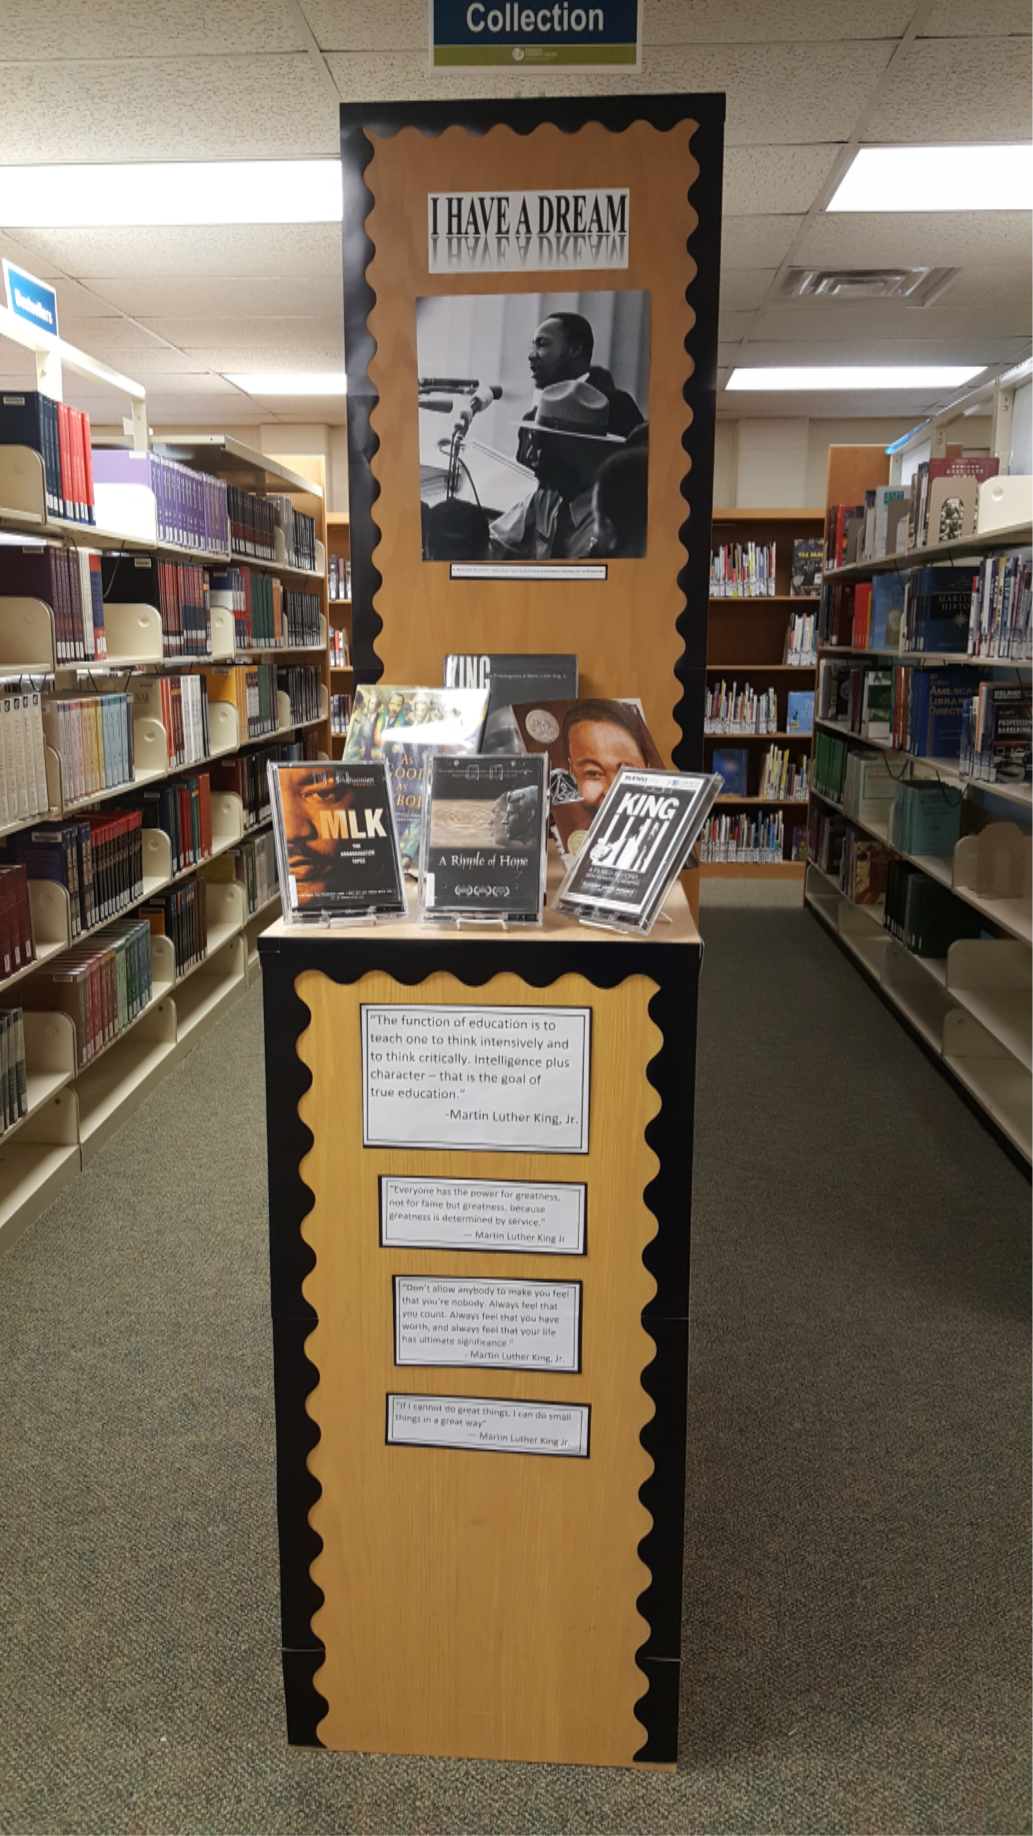 Martin Luther King Jr. Display, 2018